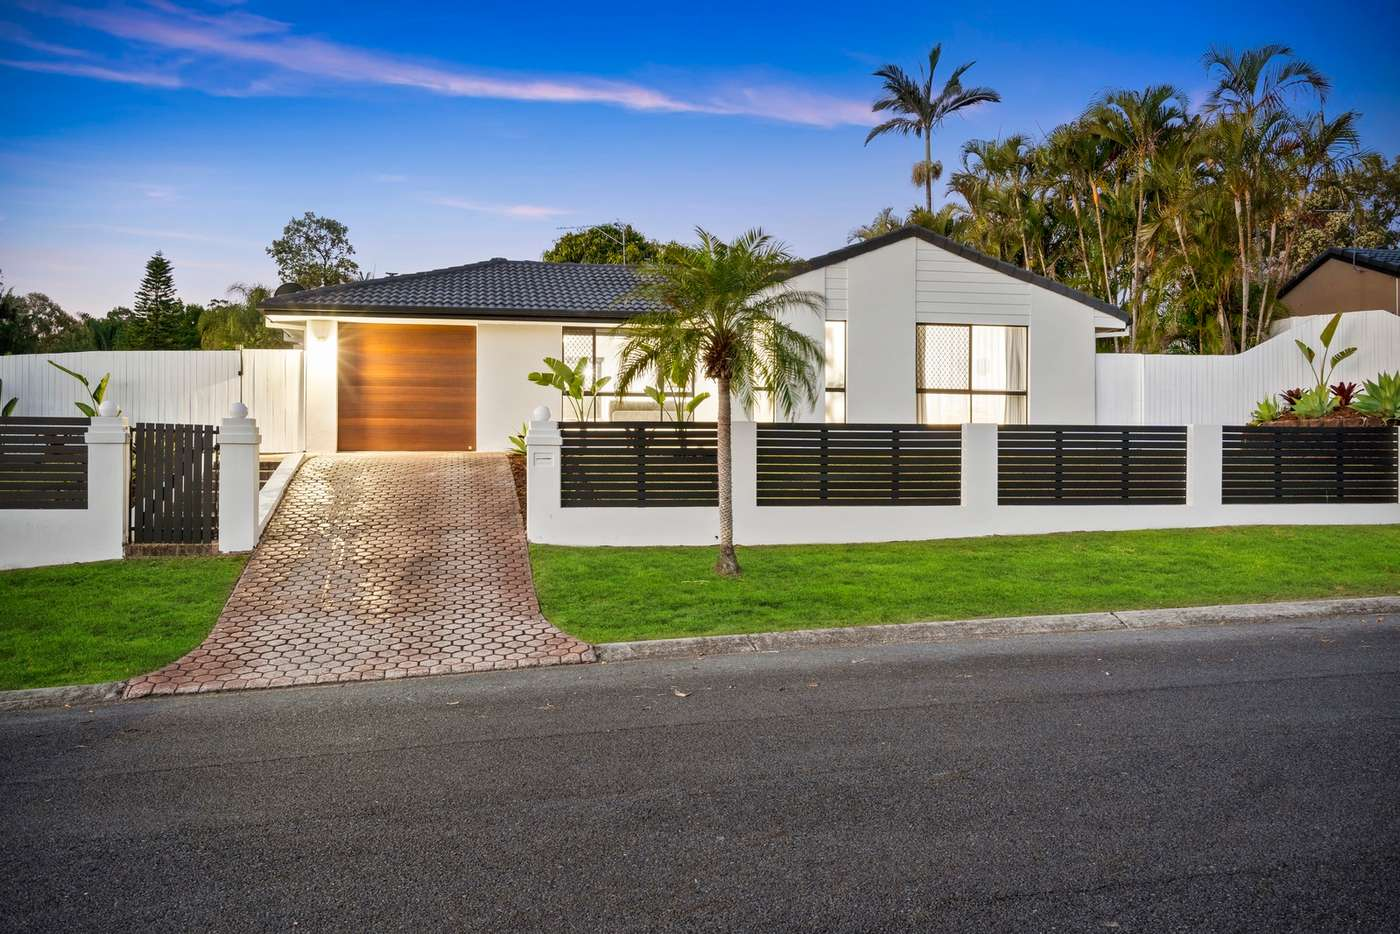 Main view of Homely house listing, 9 Saraji Street, Worongary QLD 4213